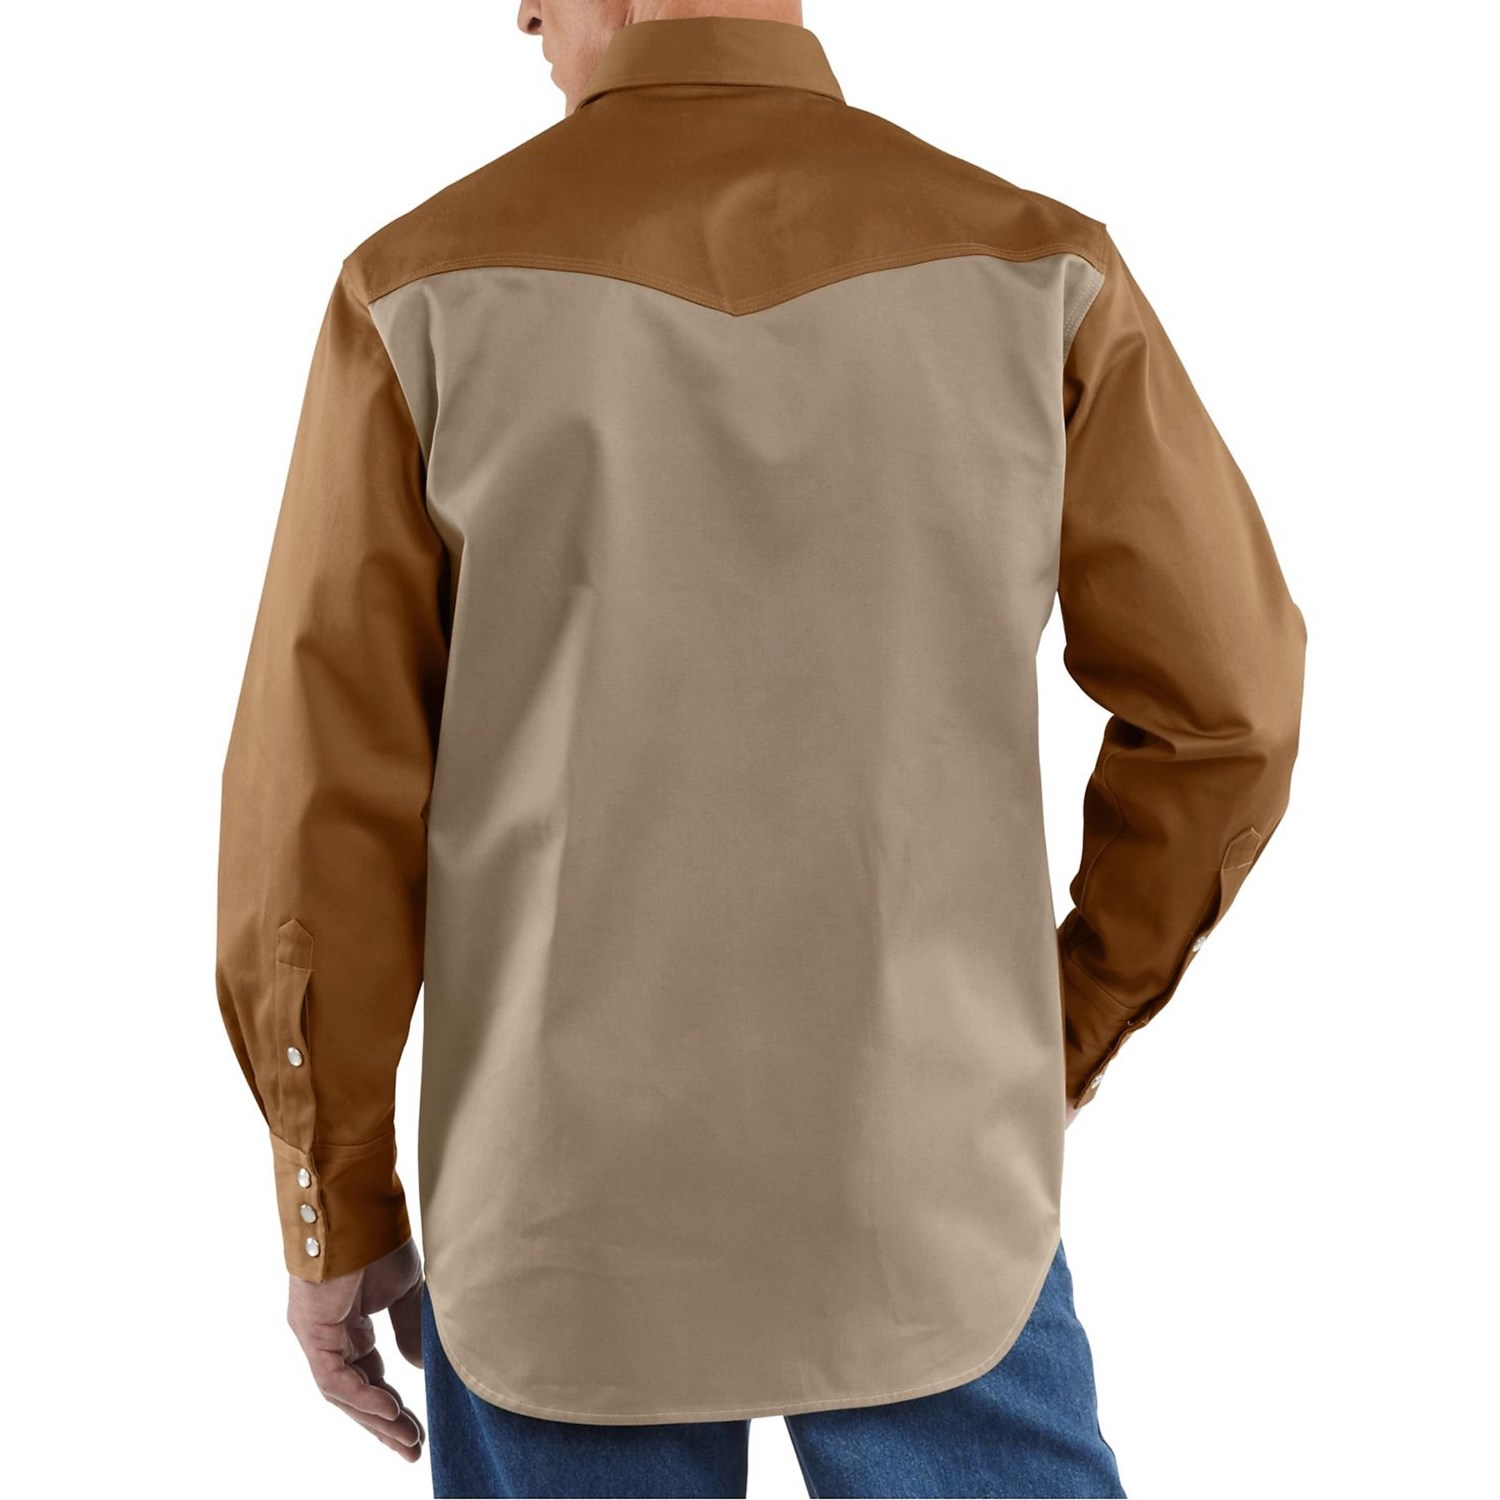 Carhartt snap front twill work shirt for tall men 4903m for Carhartt work shirts tall